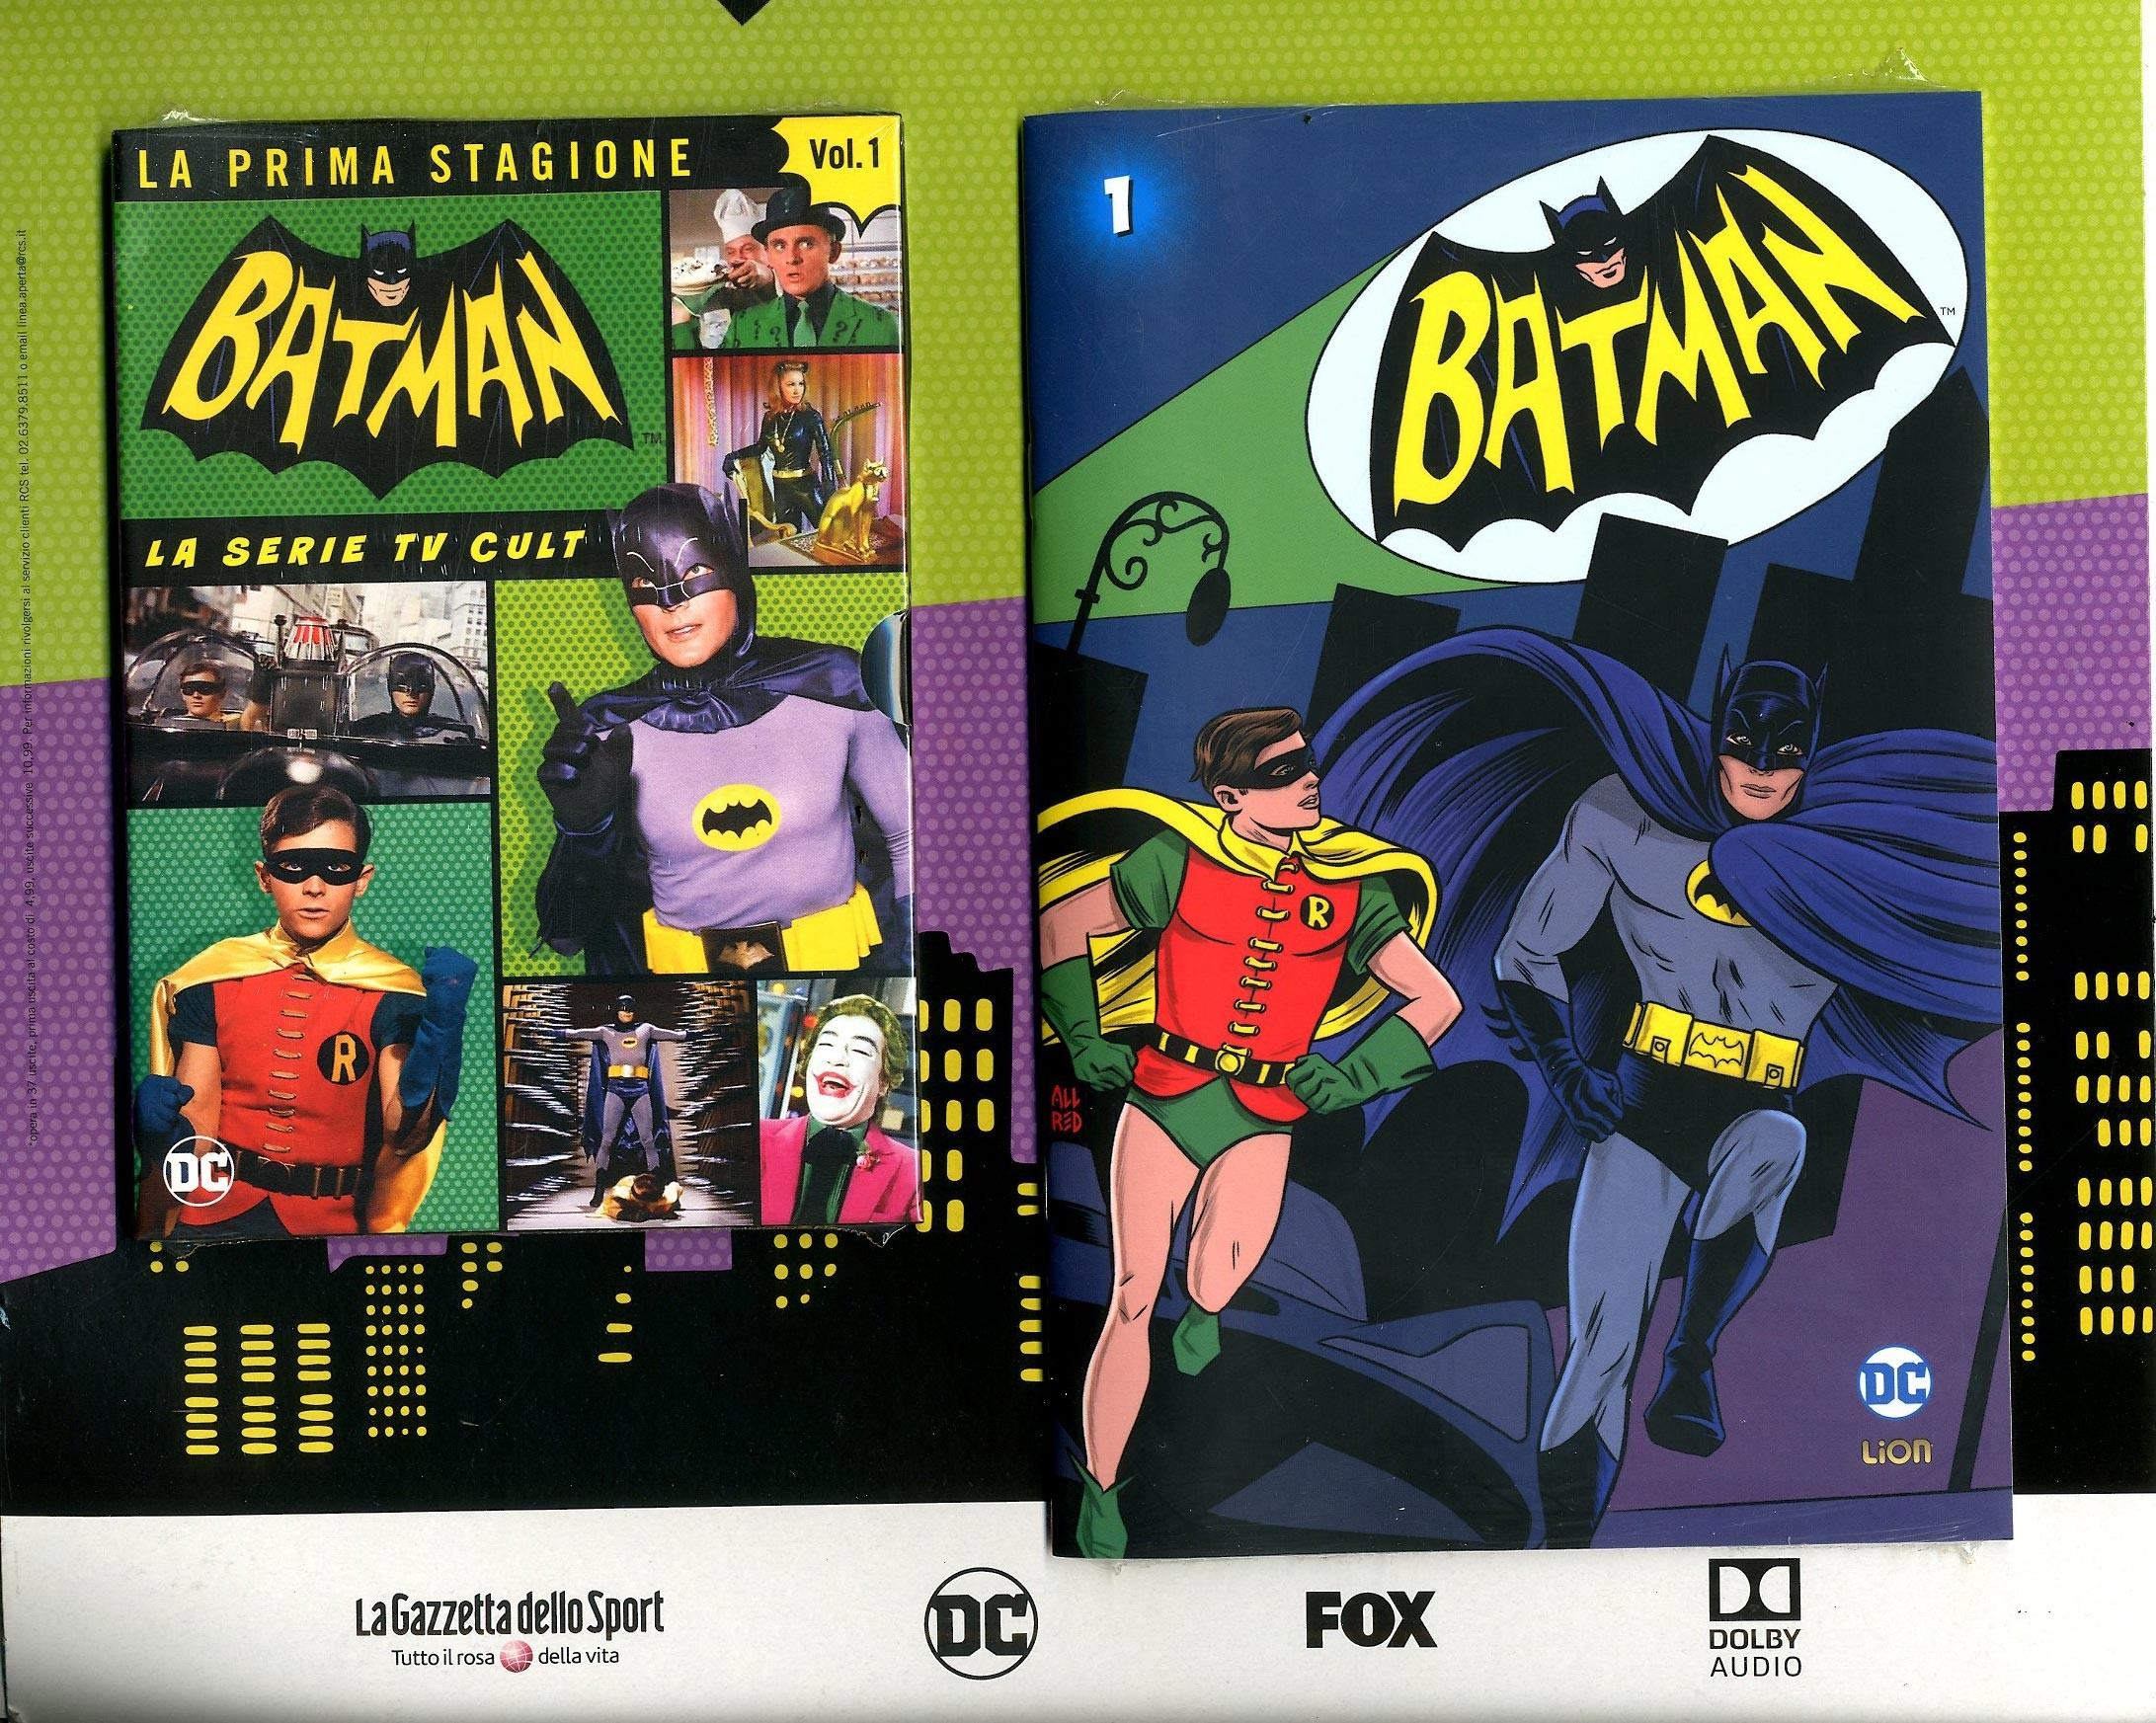 Batman '66 (Dvd + Fumetto) - N° 1 - Batman '66 - Rw Lion